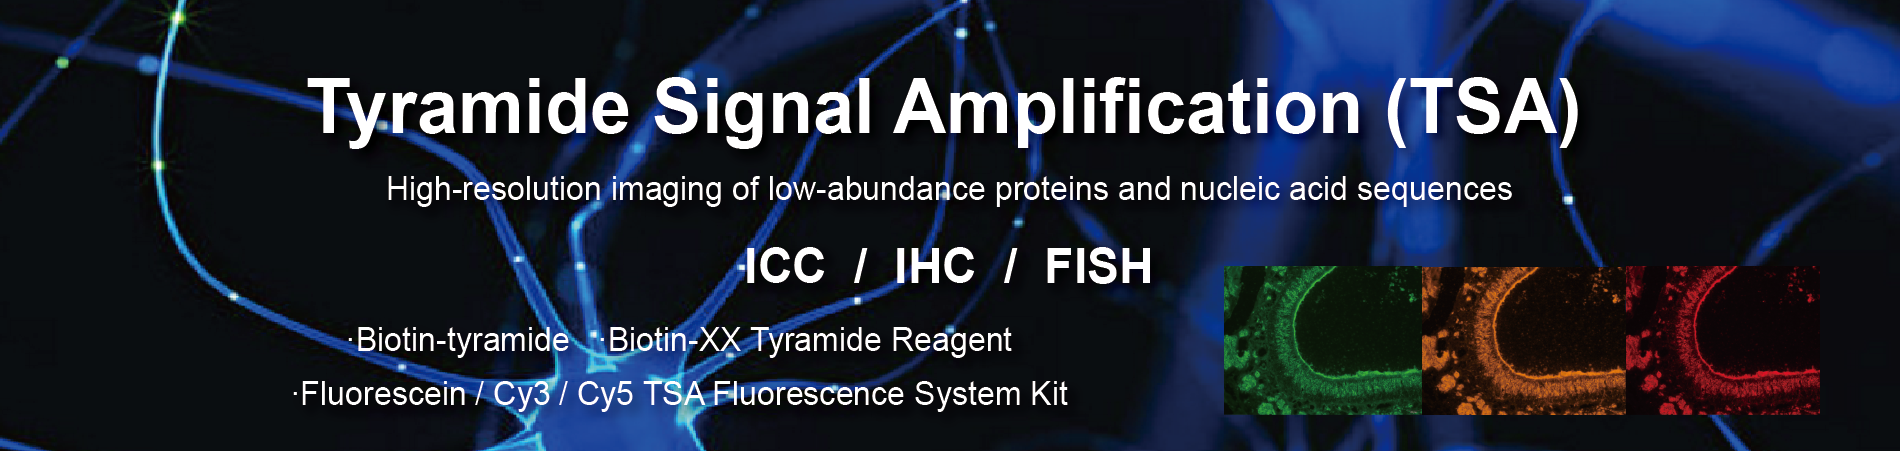 Tyramine Signal Amplification (TSA) Series